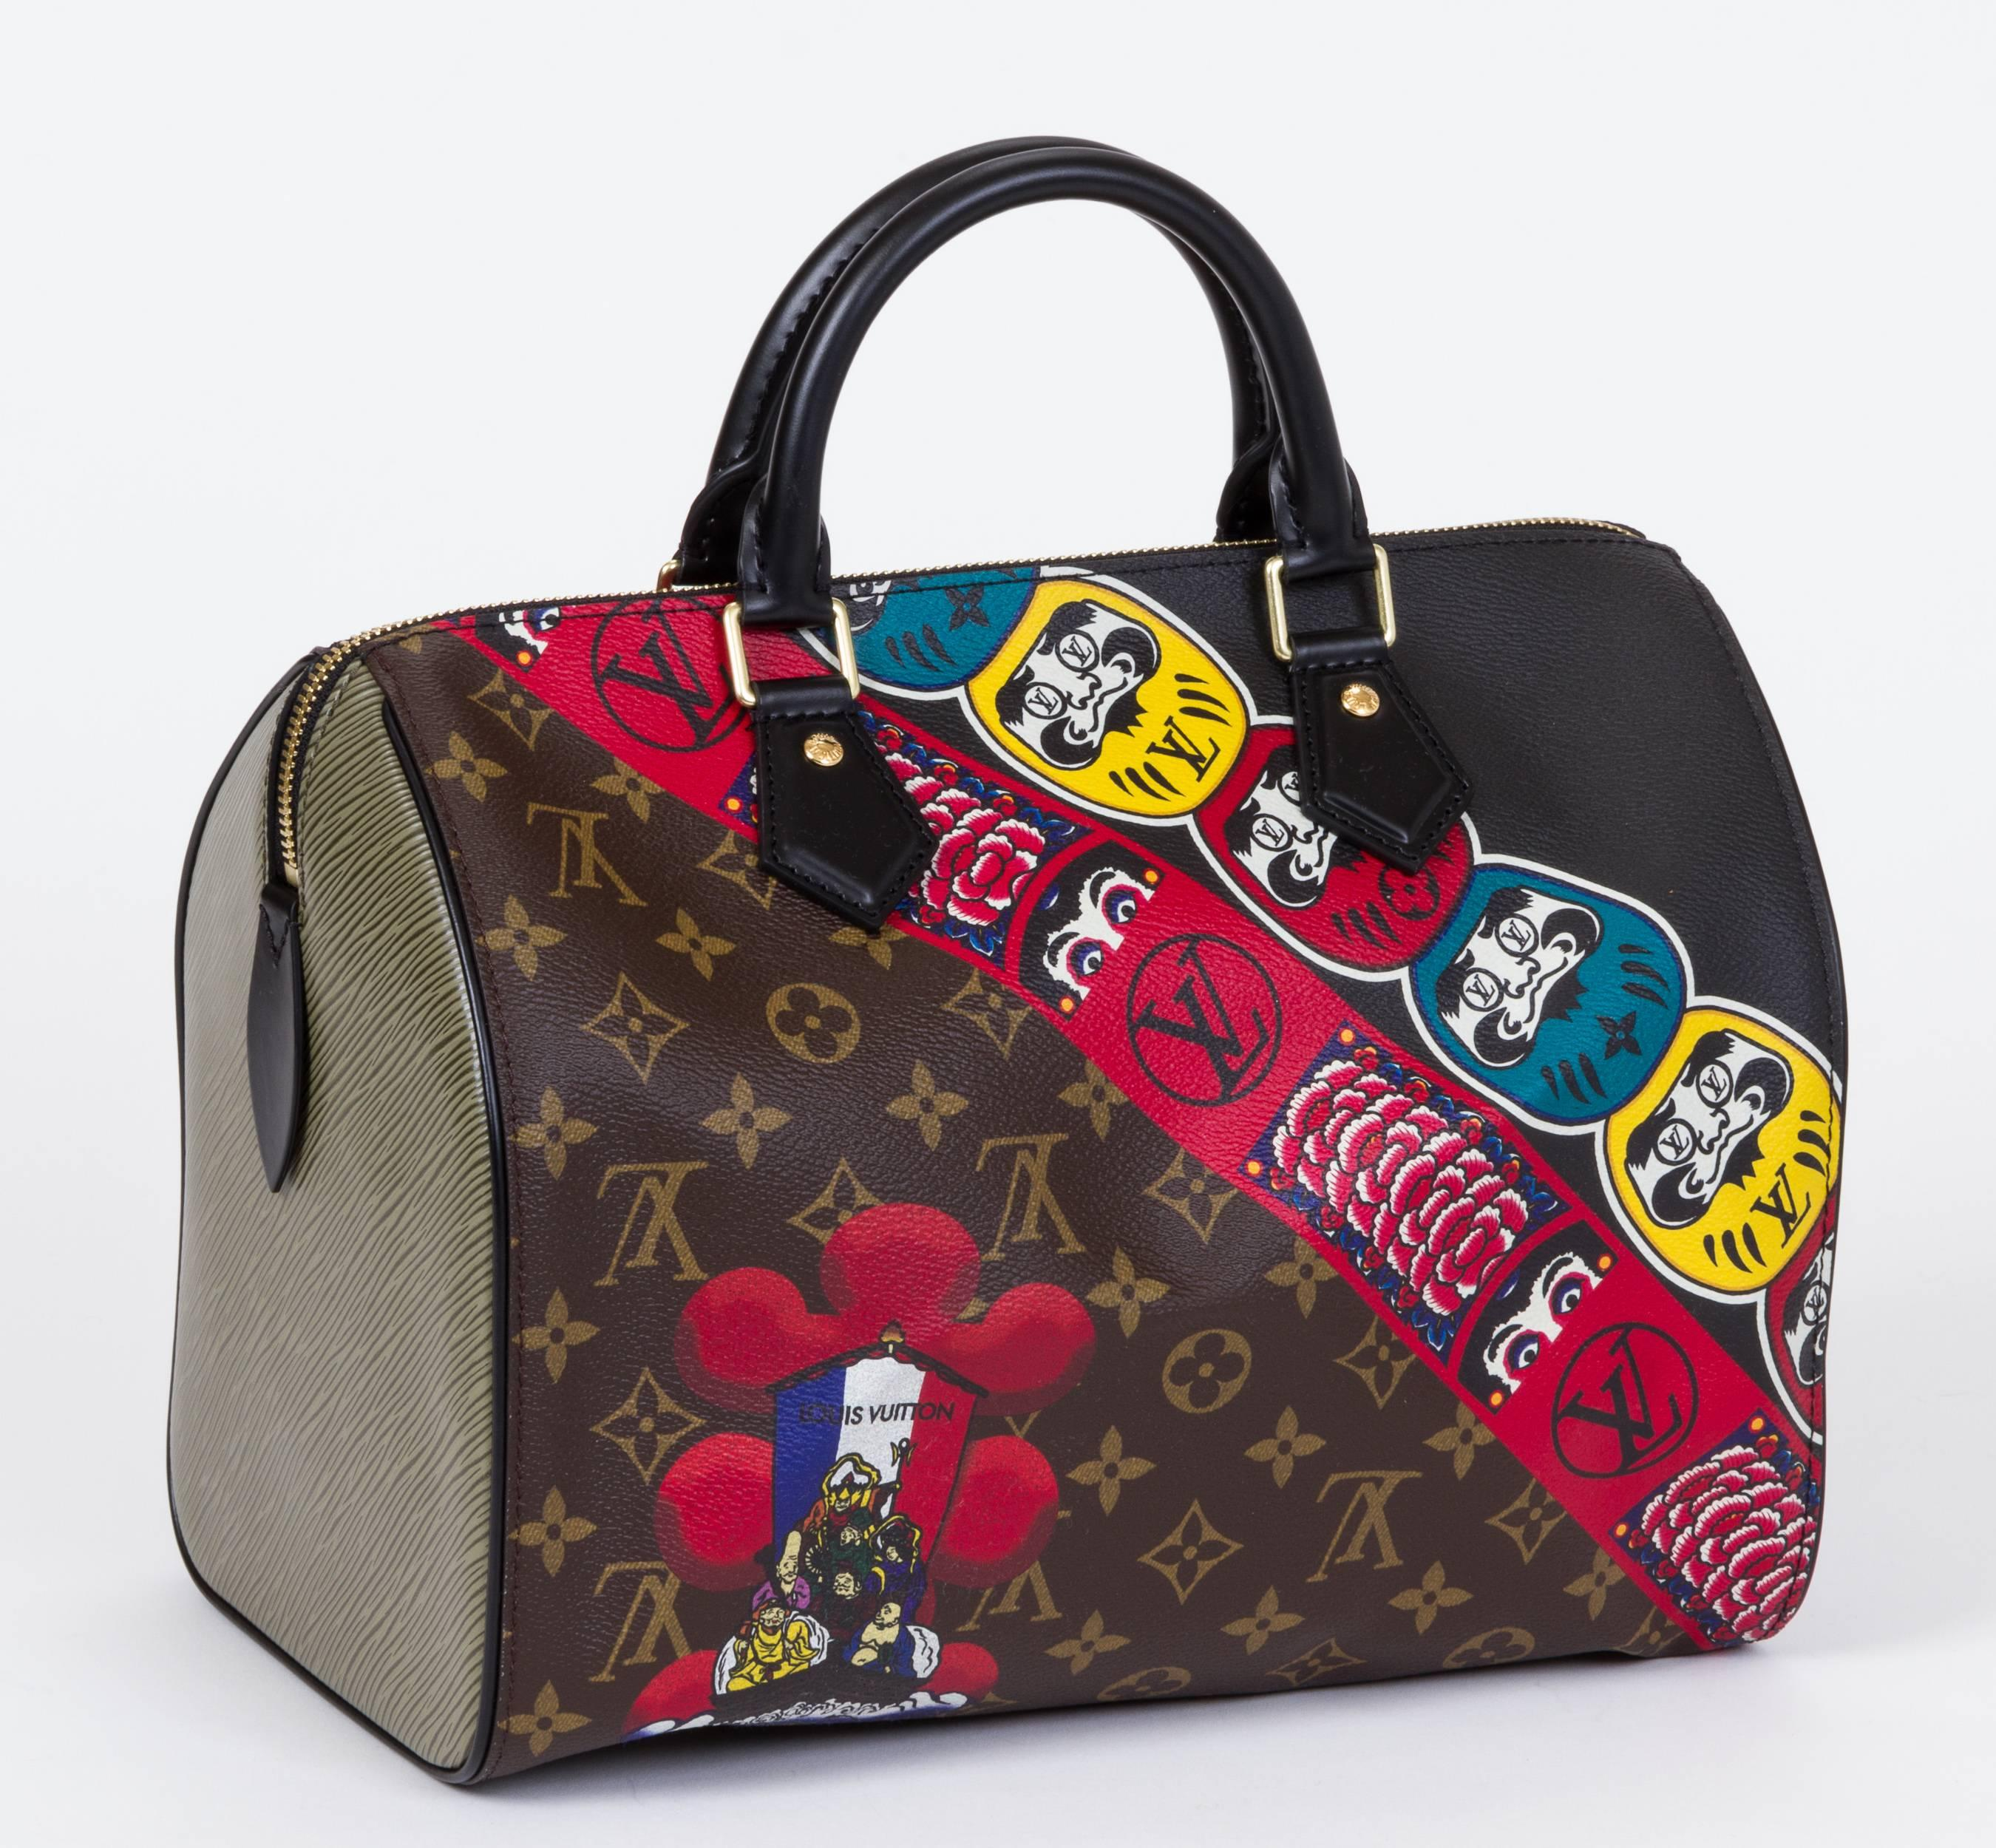 92fc623e336d New Vuitton Kabuki Limited Edtion Speedy 30 Bag For Sale at 1stdibs